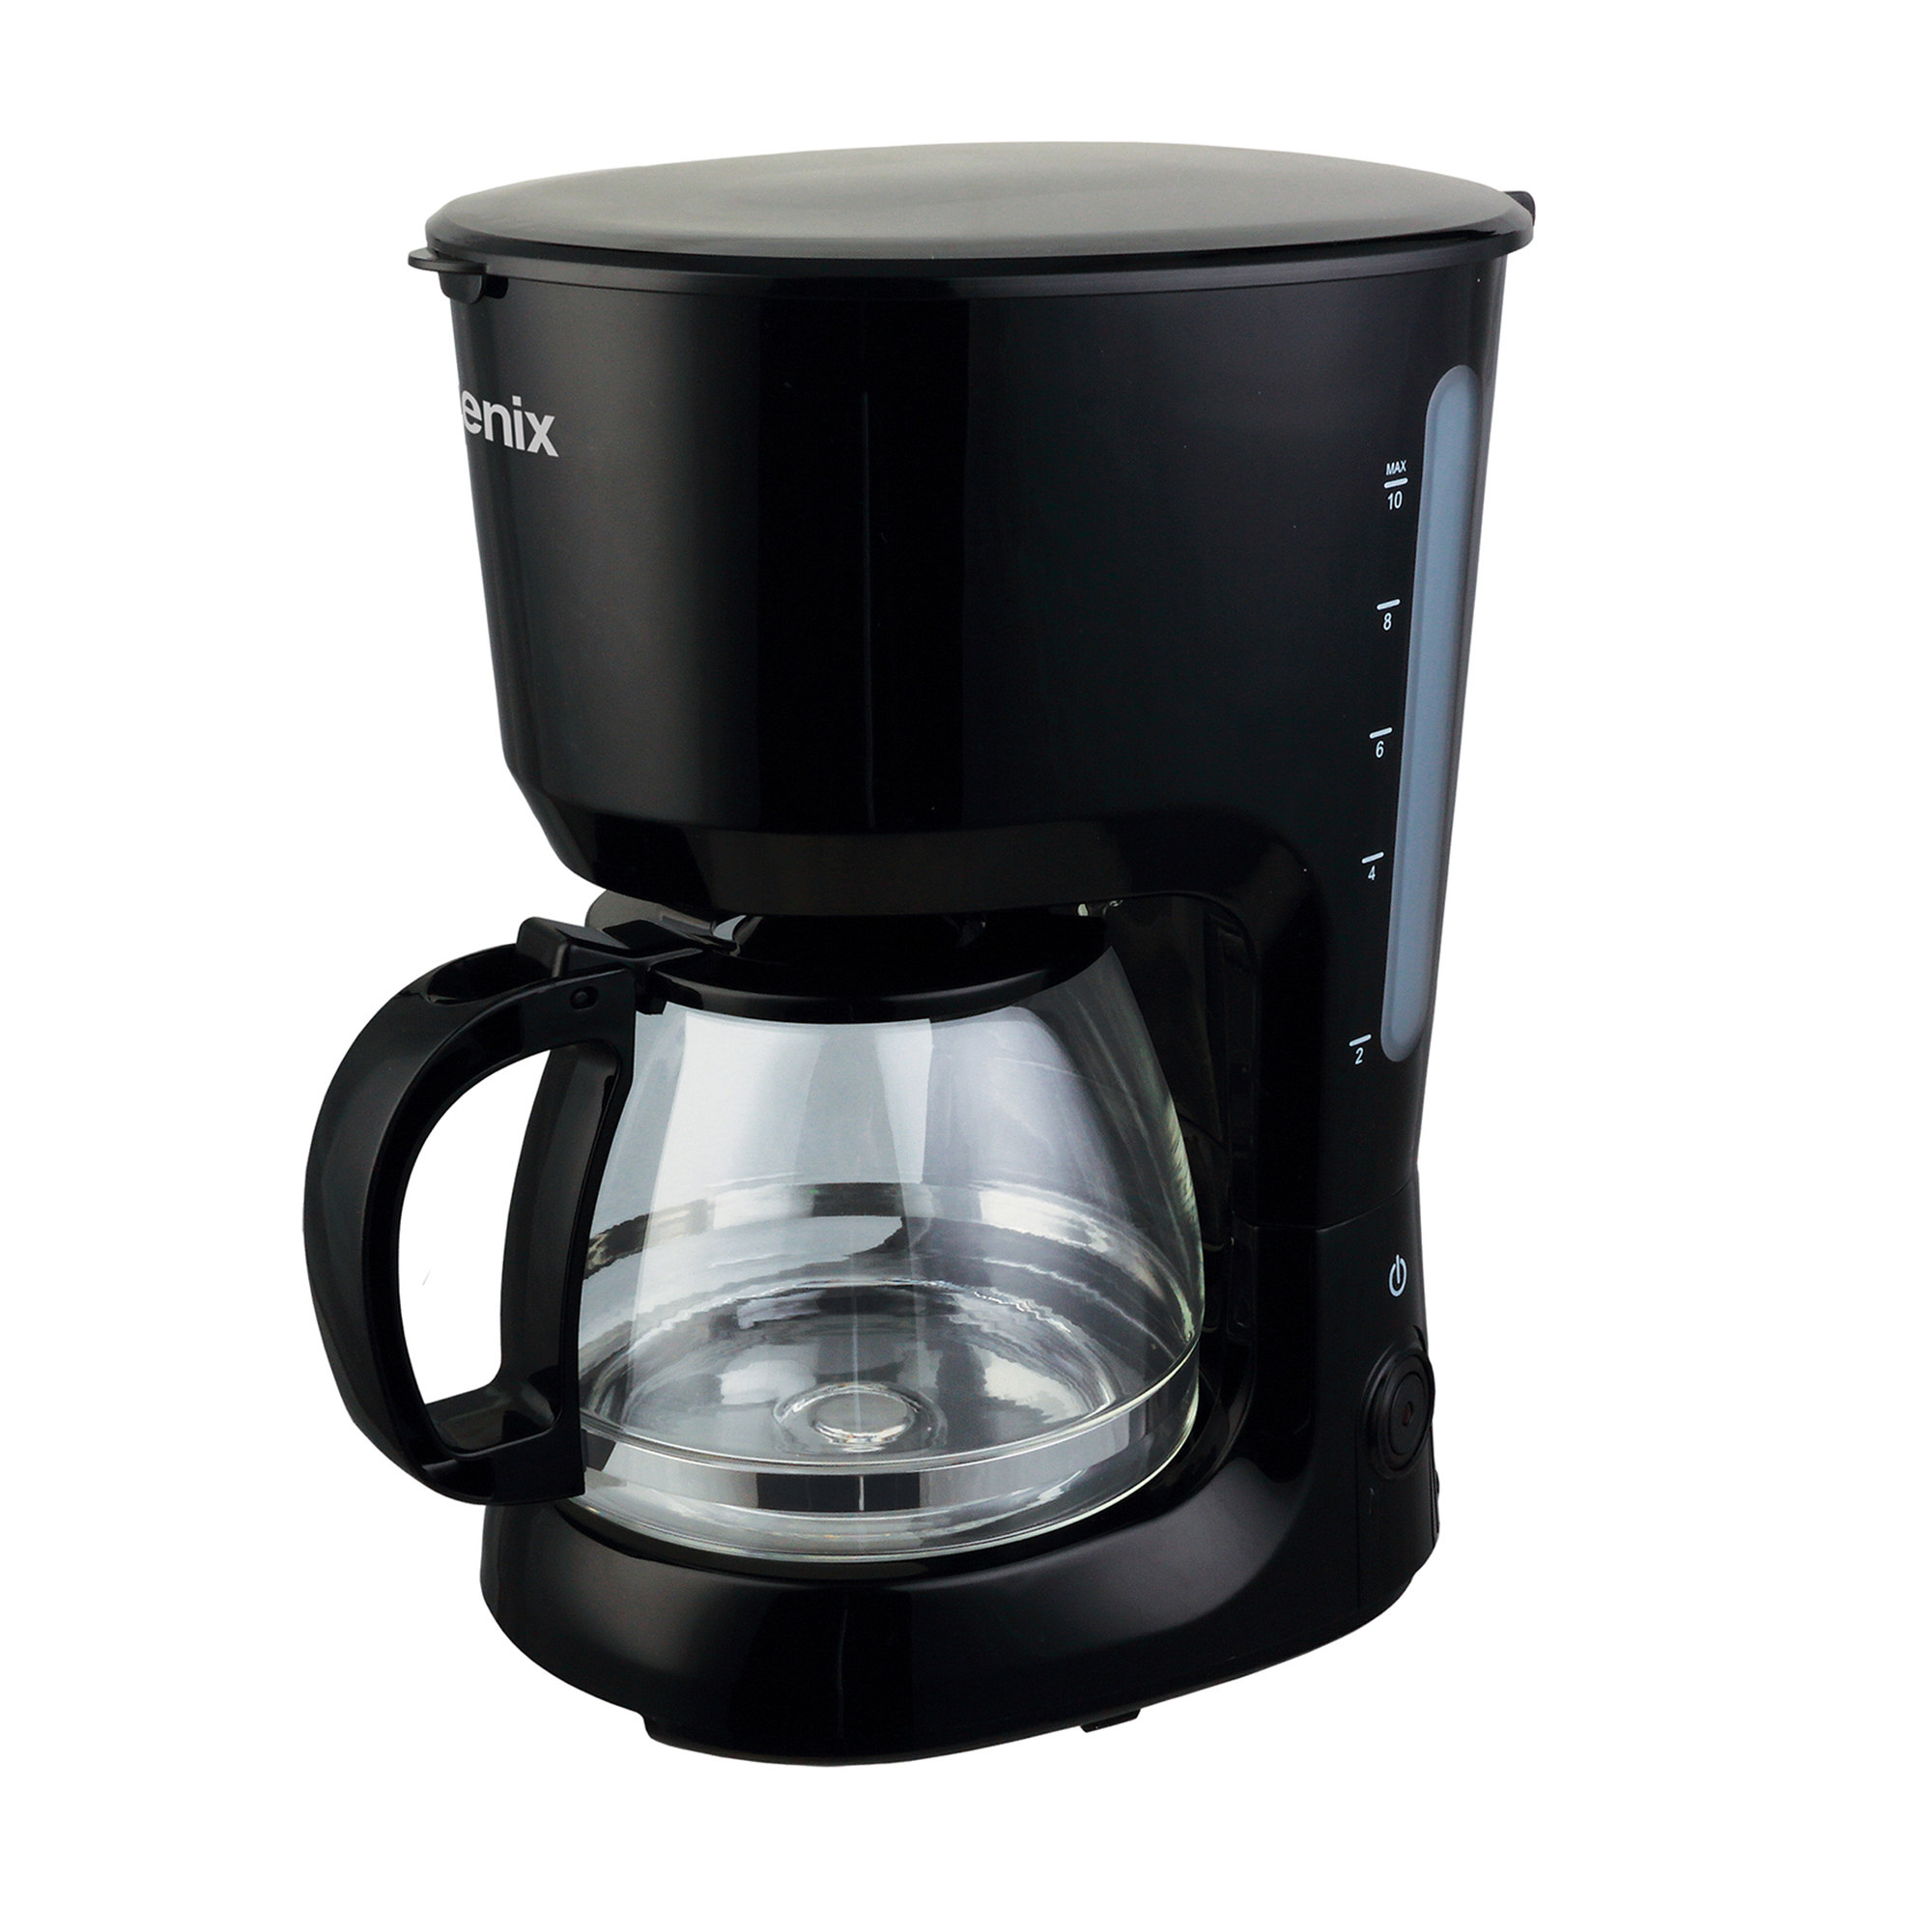 Coffee Machines & Accessories IGENIX Filter Coffee Maker 1.25 Litre Black Ref IG8127